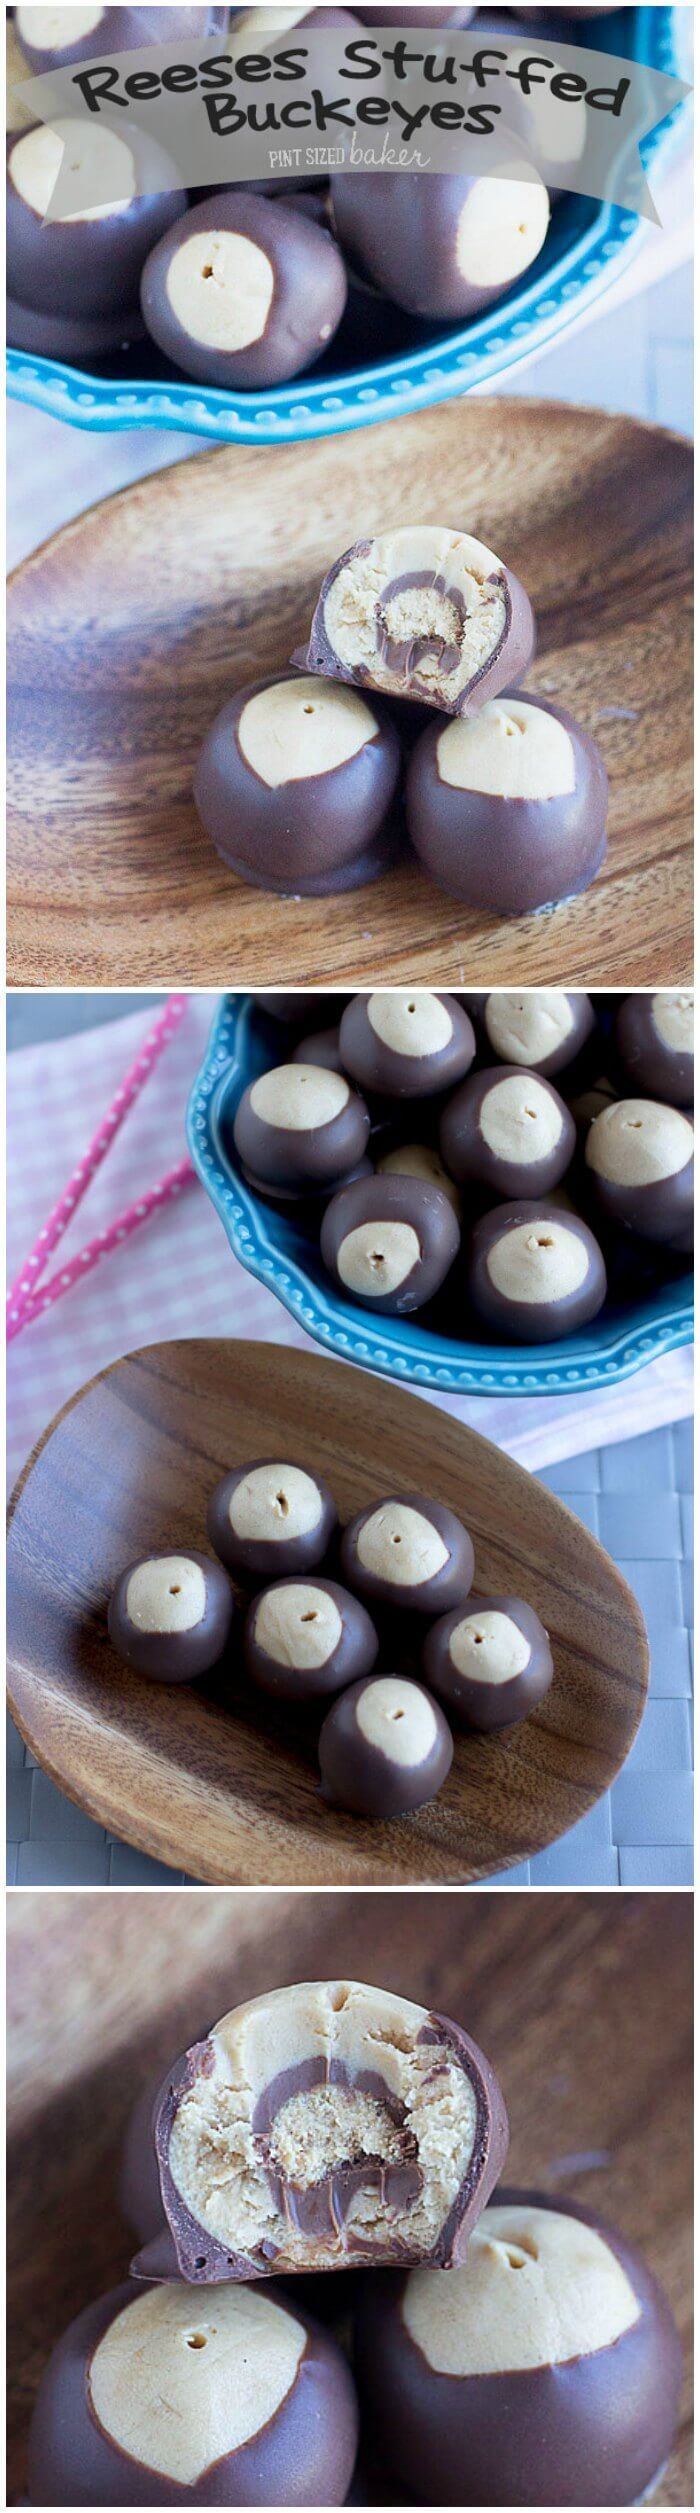 Everyone will flip for these Reese's Stuffed Buckeye Candies. Peanut Butter candy stuffed with a peanut butter candy and then dipped in chocolate. They are so good!!